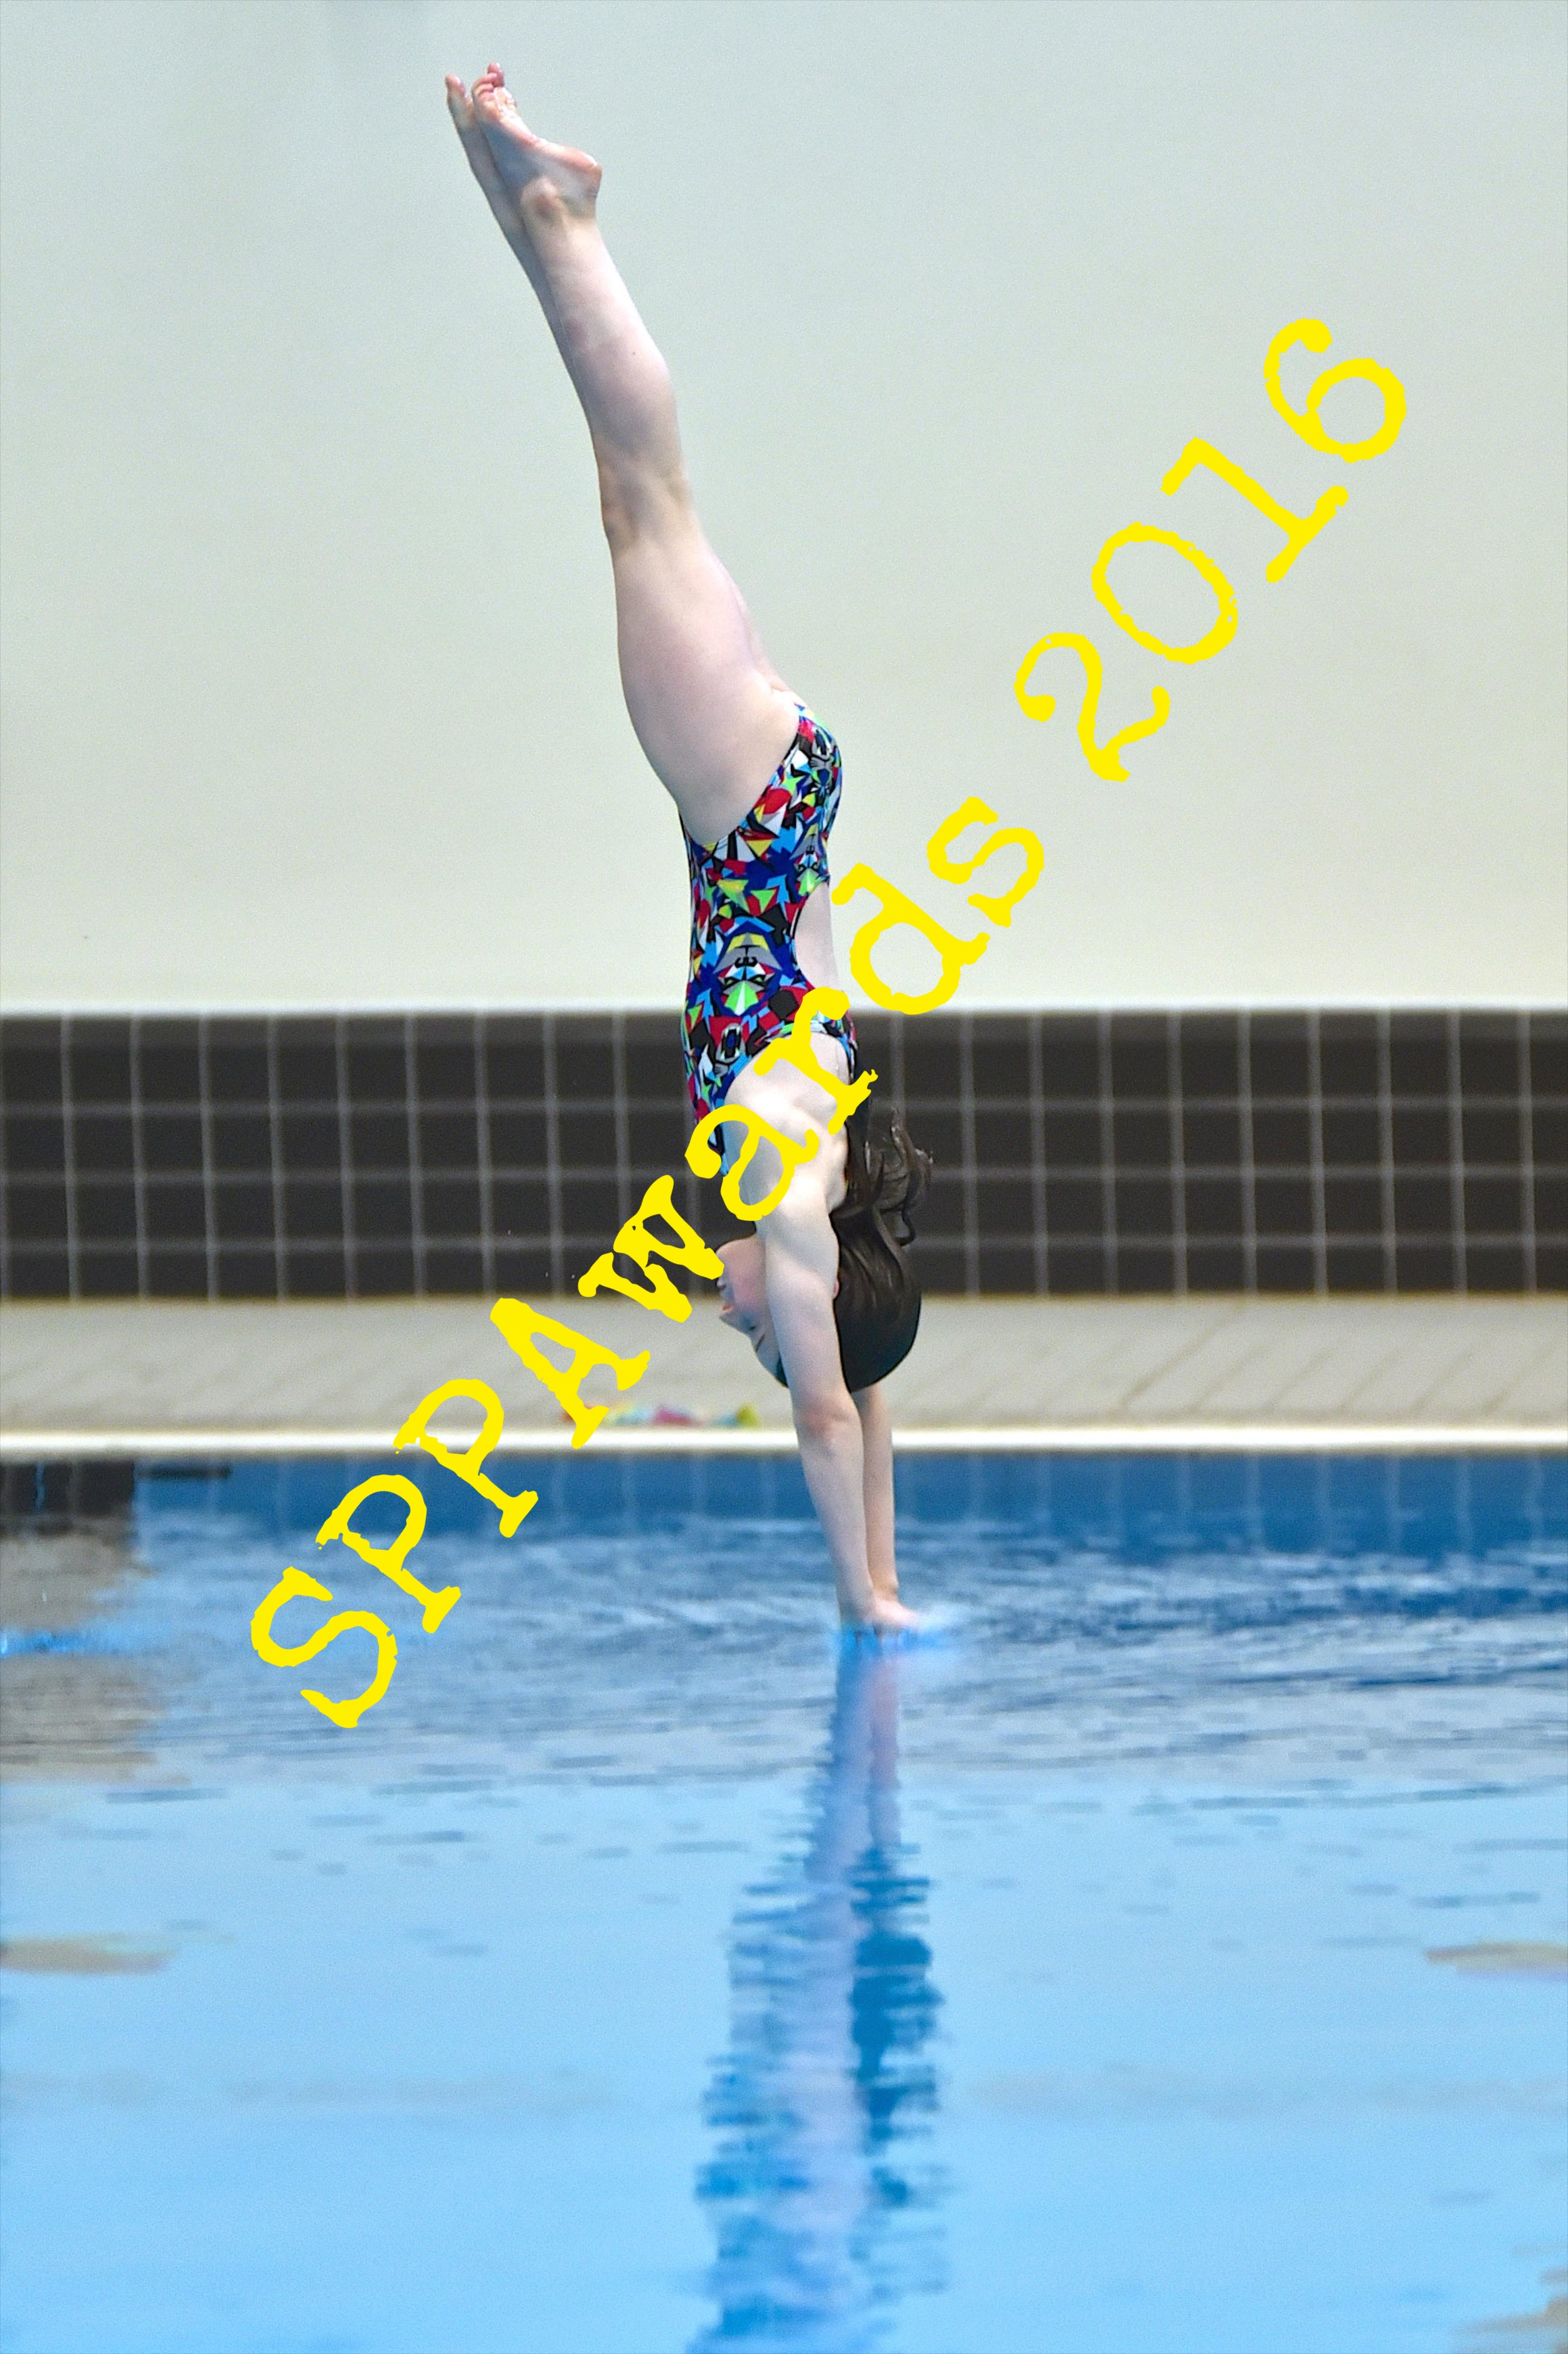 Sports_Action_Handstand on water.jpg